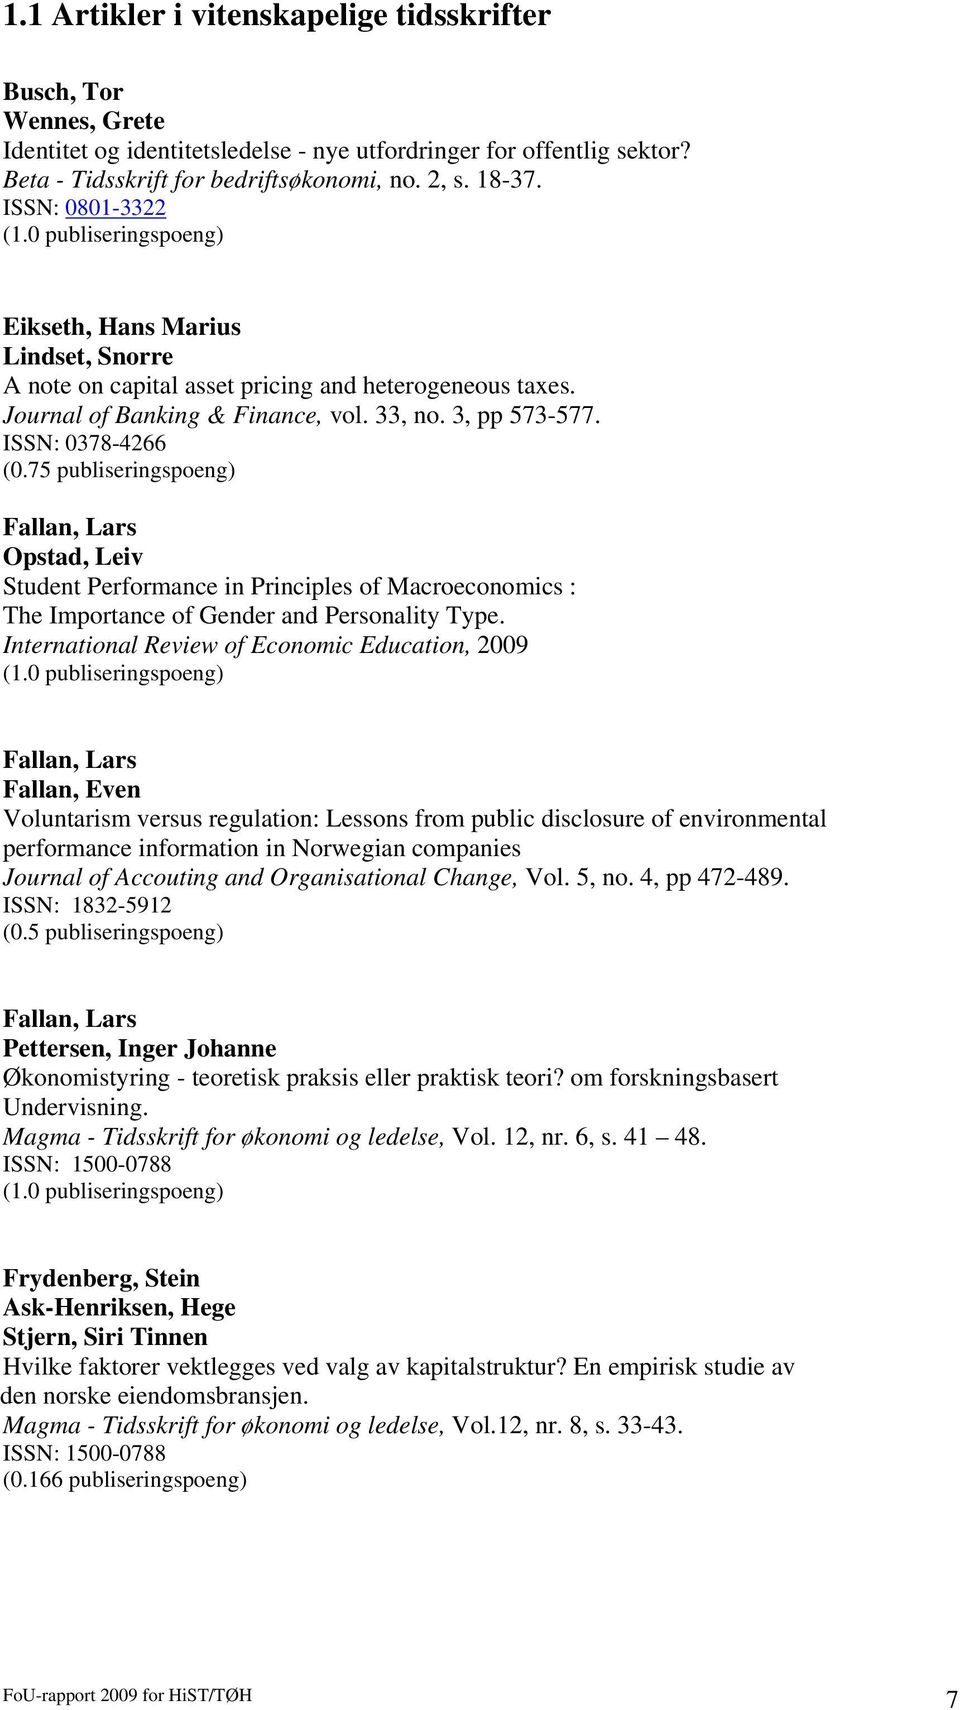 ISSN: 0378-4266 (0.75 publiseringspoeng) Fallan, Lars Opstad, Leiv Student Performance in Principles of Macroeconomics : The Importance of Gender and Personality Type.